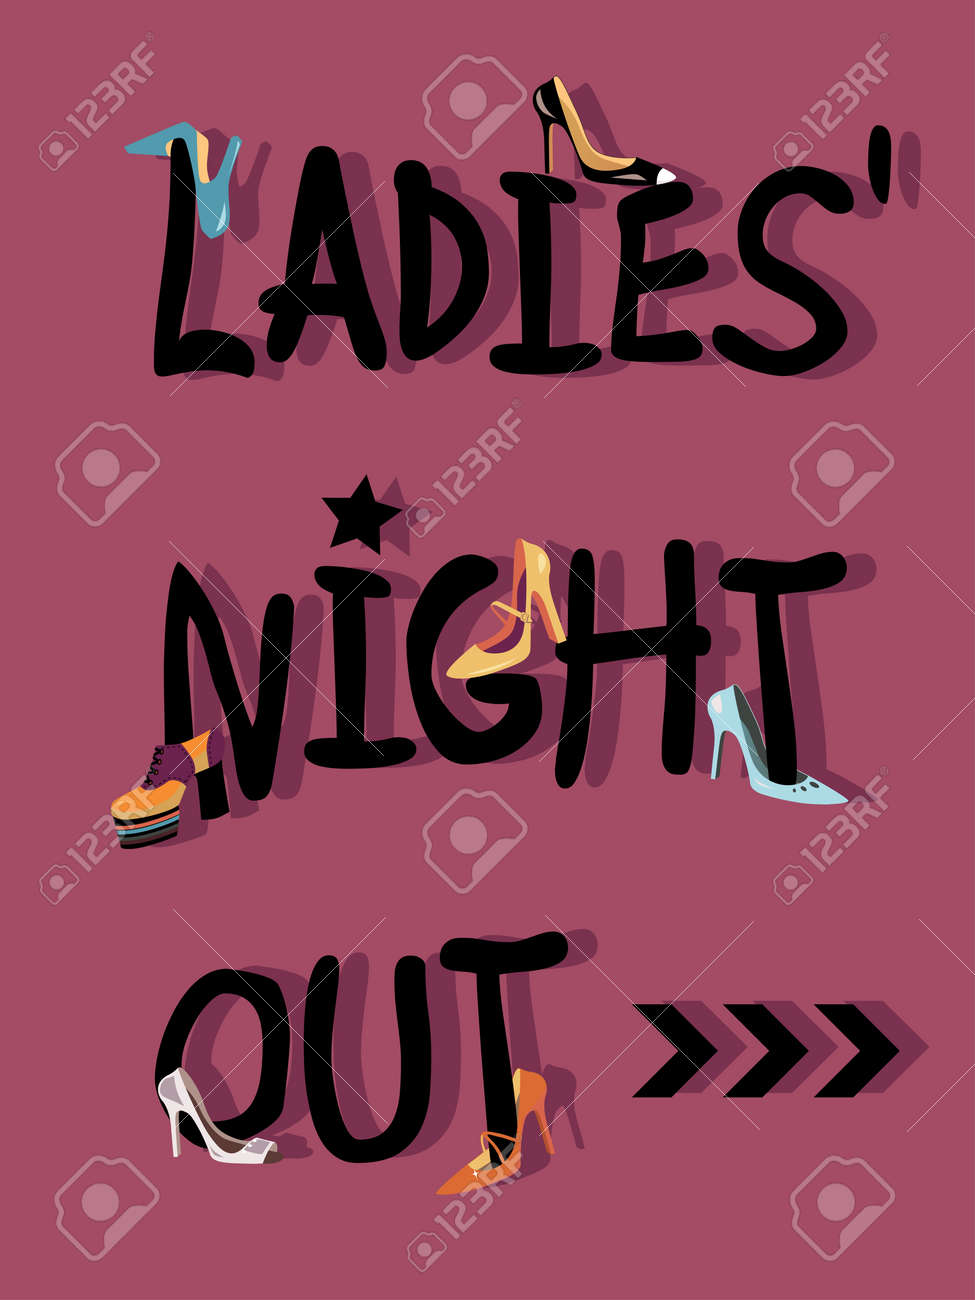 Ladies Night Out Invitations Card Design With Shoes Royalty Free